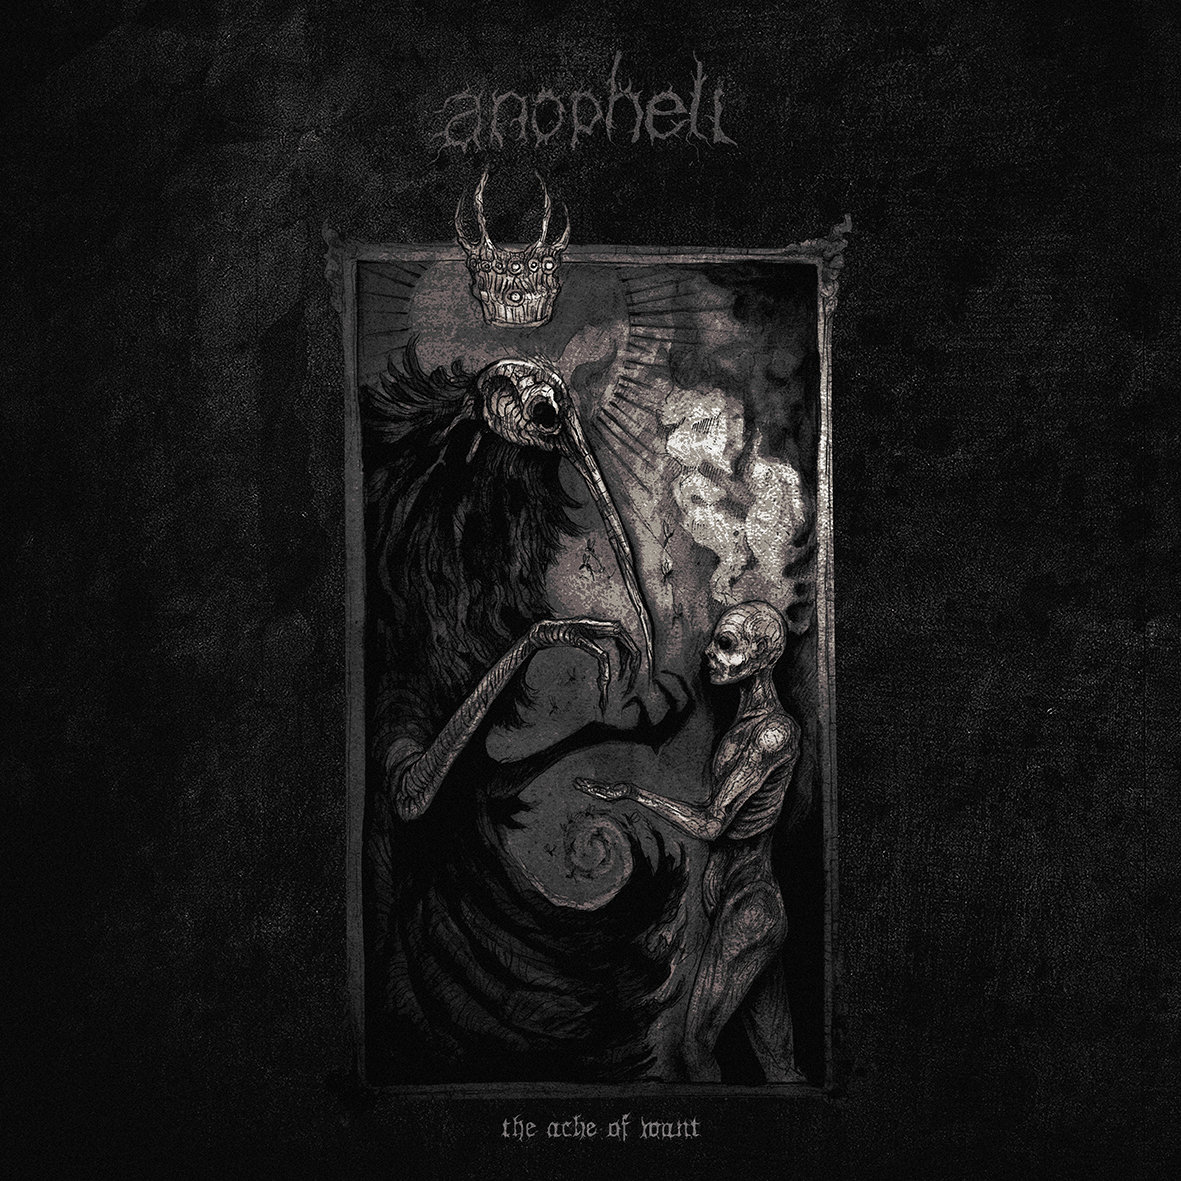 Anopheli - Awoken @ 'The Ache Of Want' album (metal, cello)